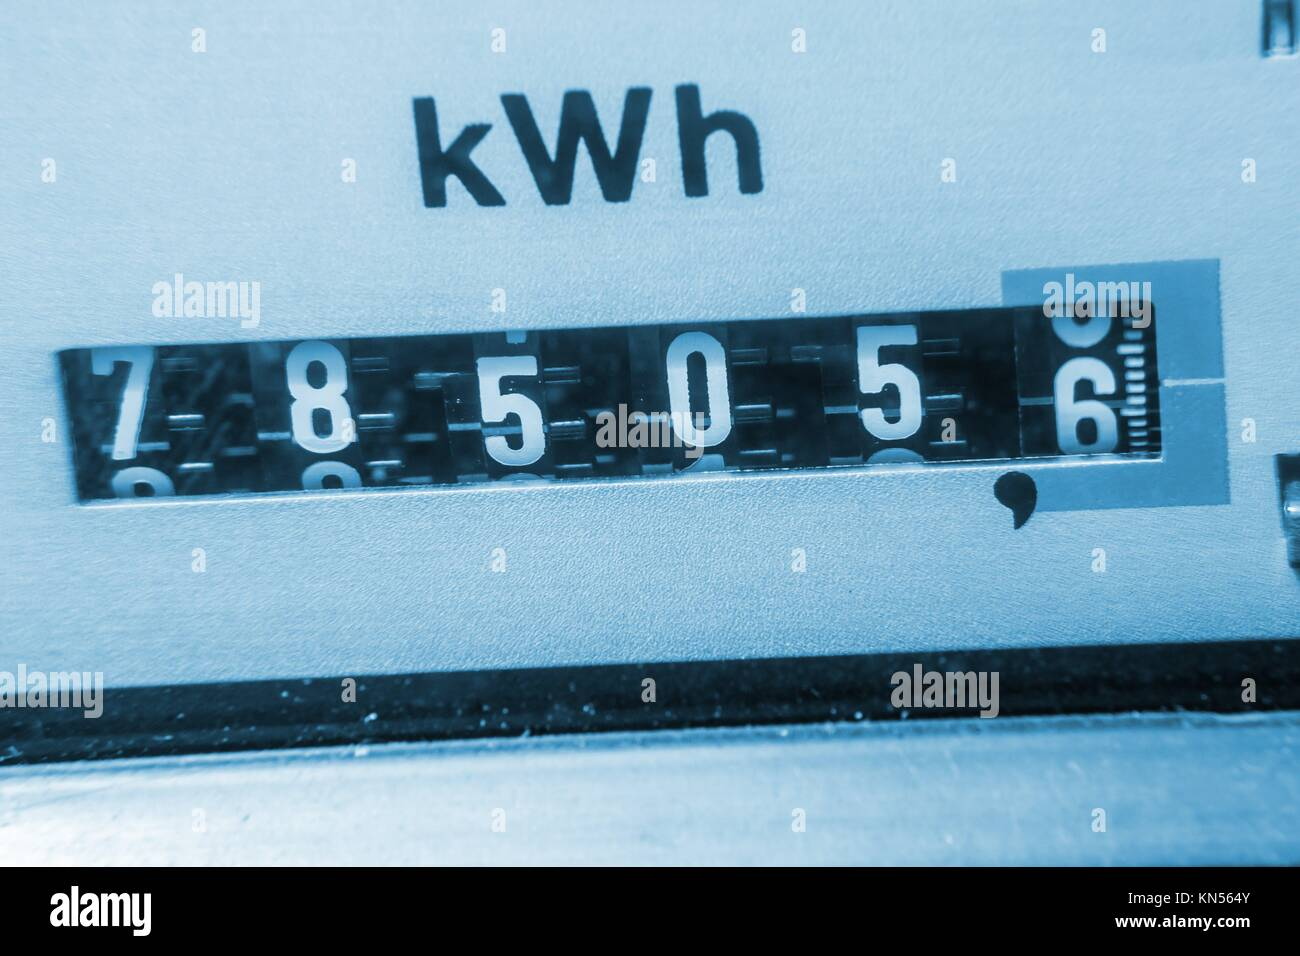 electricity meter background (kwh). - Stock Image